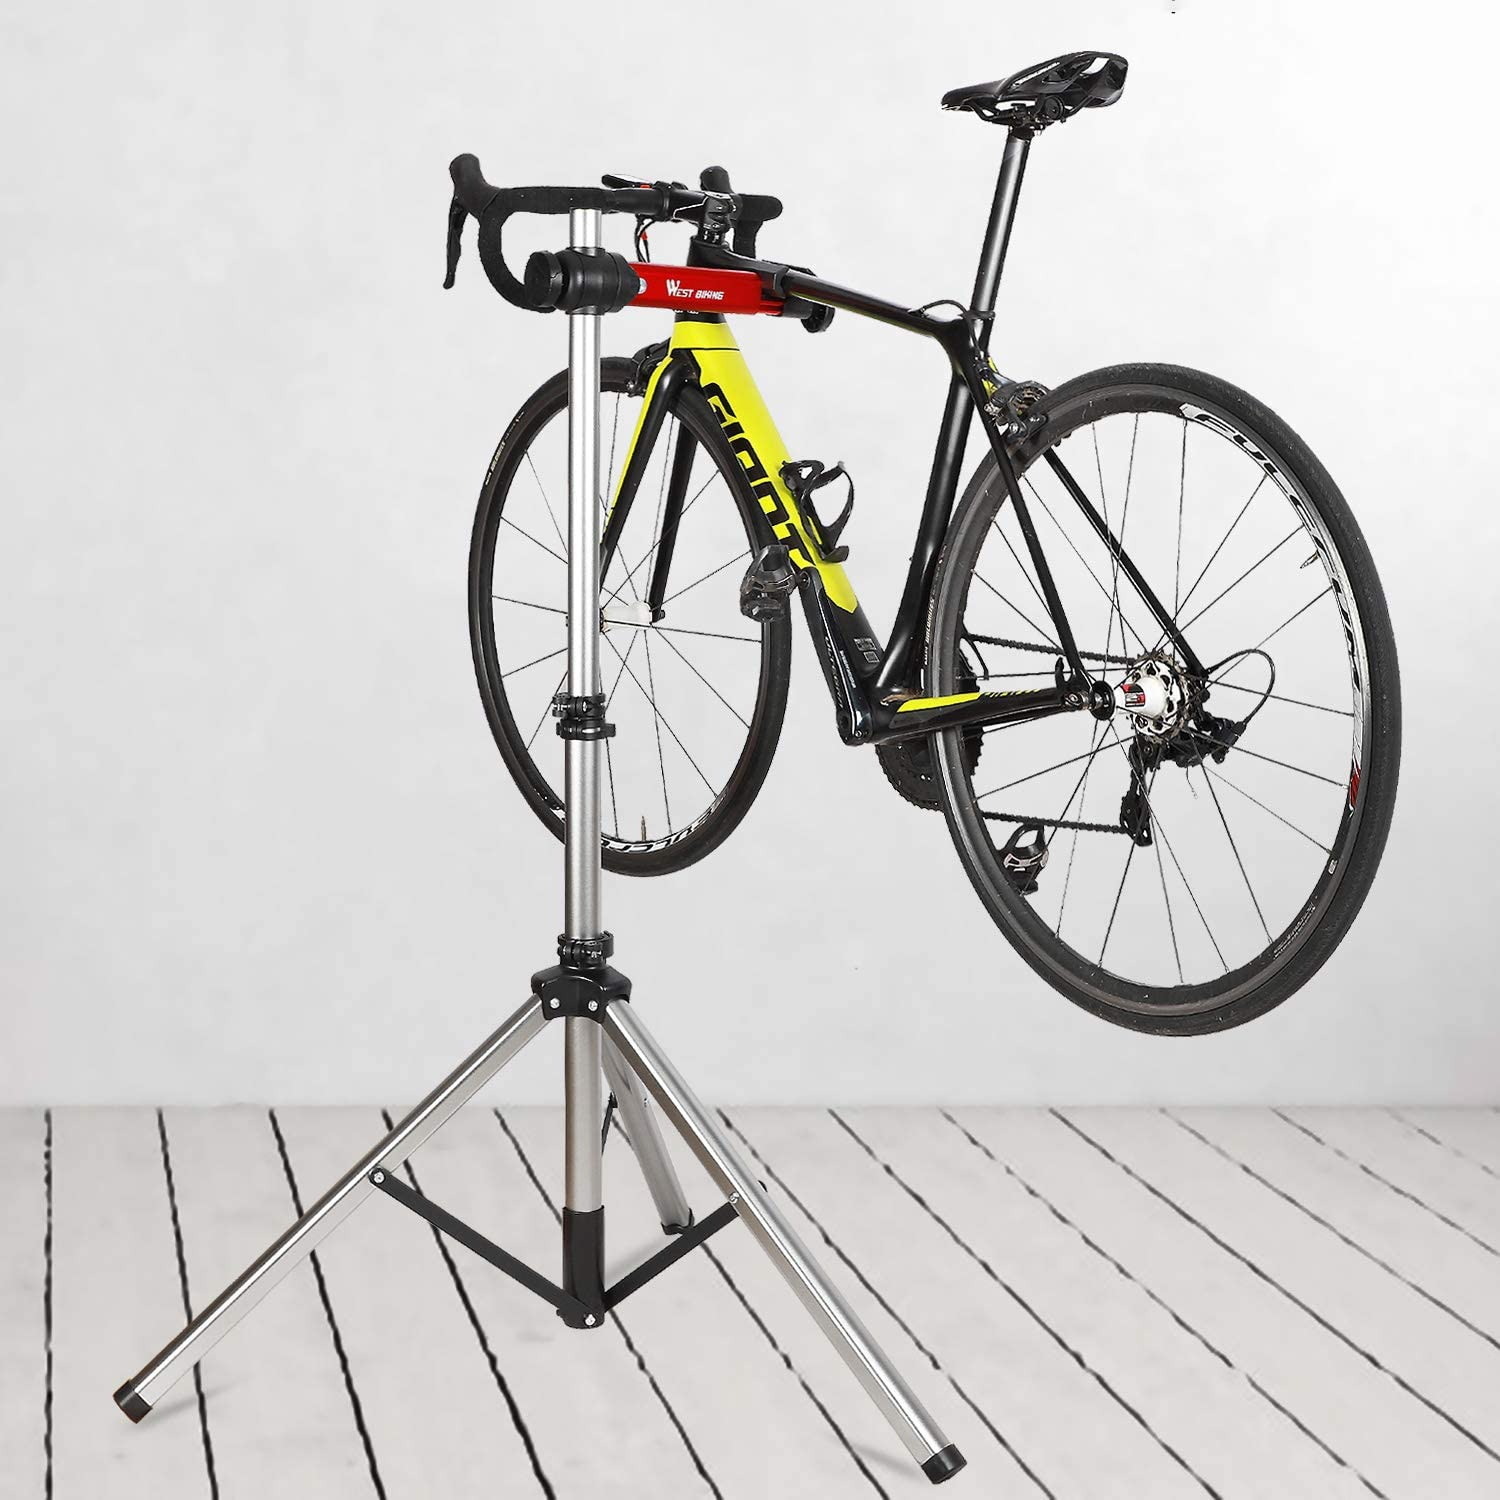 WESTLIGHT Bike Stands for Maintenance Adjustable Clamp to 7 CM 360/° Rotatable 85-150 cm Height Tool Tray Foldable Robust Bike Work Stand Bike Cleaning Stand for All Types of Bikes Up to 38.6 Kg